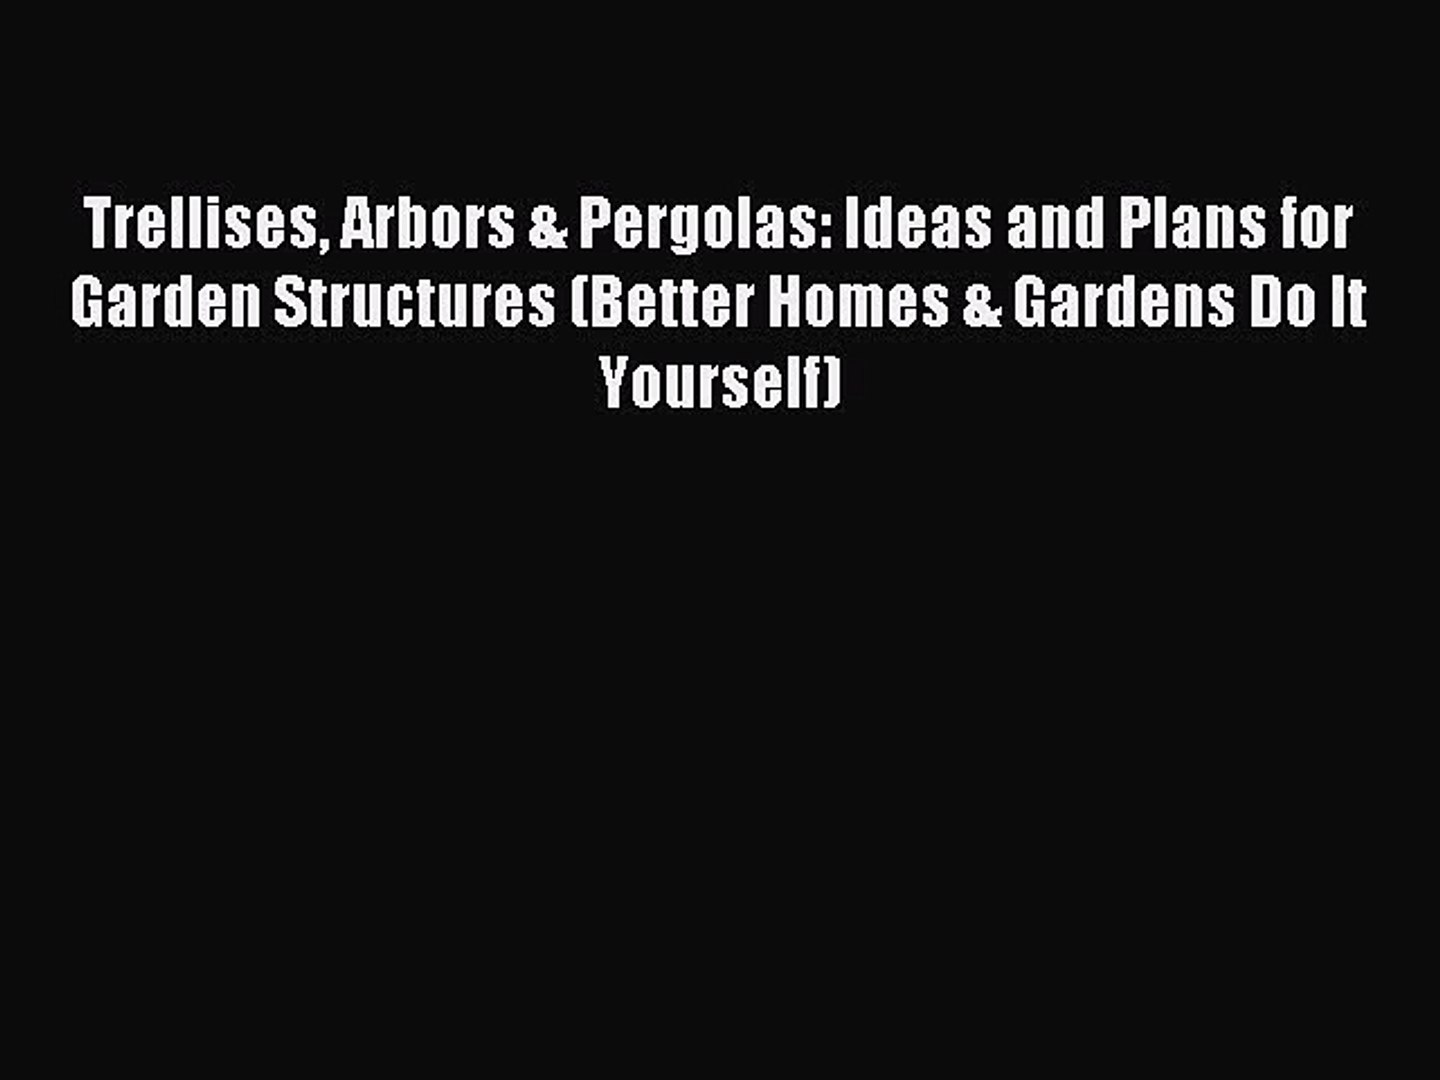 Read Trellises Arbors & Pergolas: Ideas and Plans for Garden Structures (Better Homes & Gard